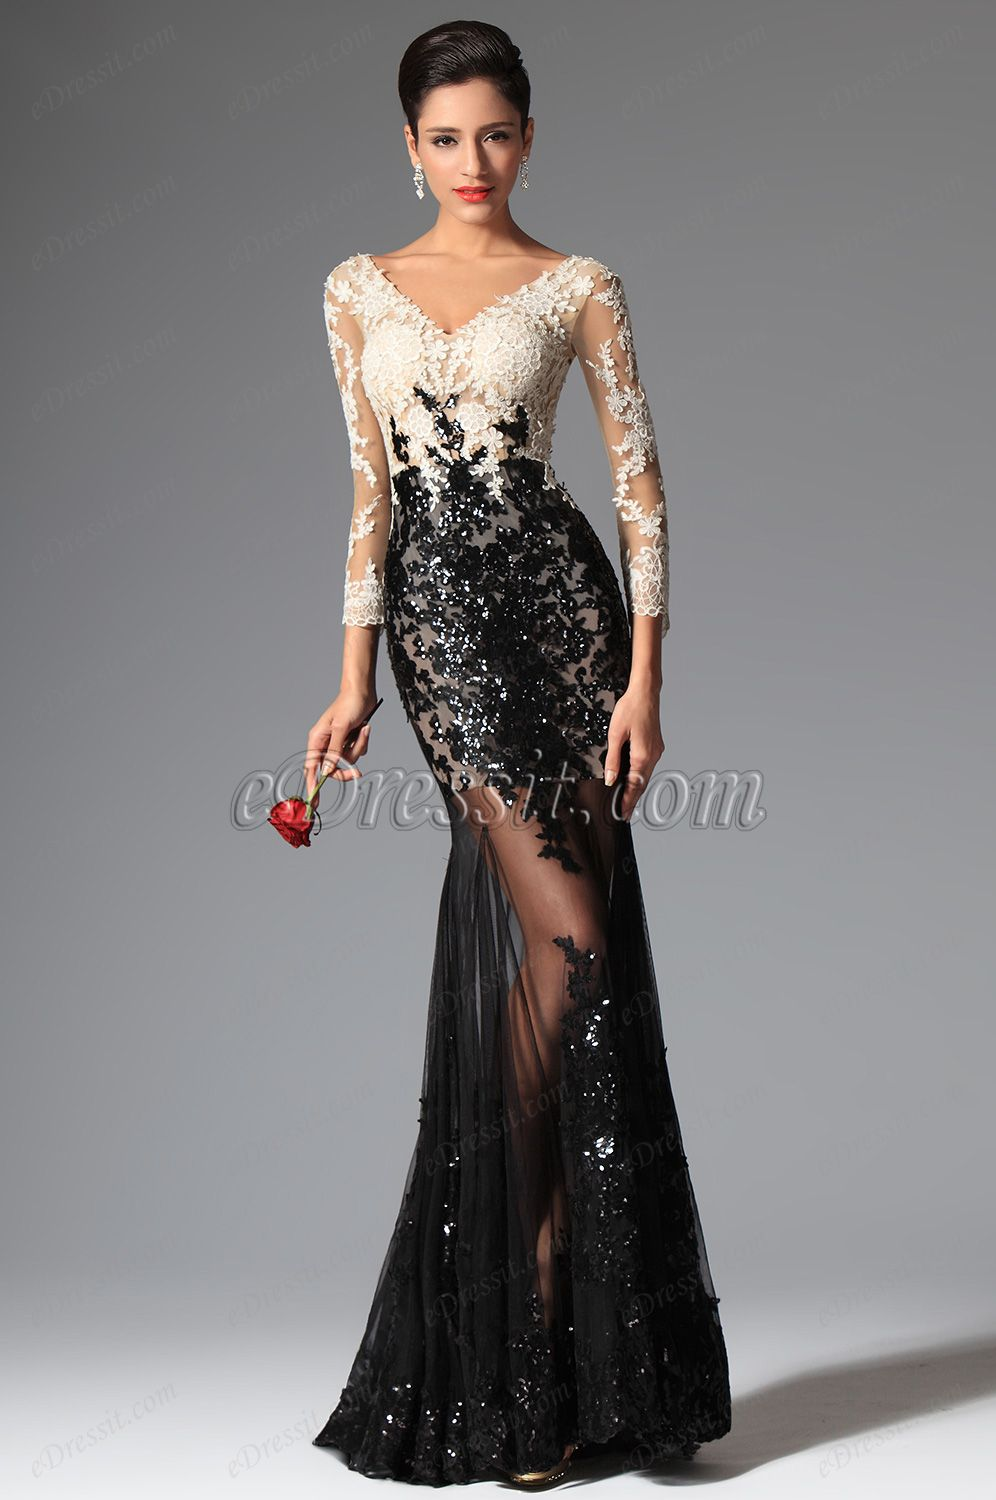 Sexy vcut sequin lace sleeves evening prom ball gown